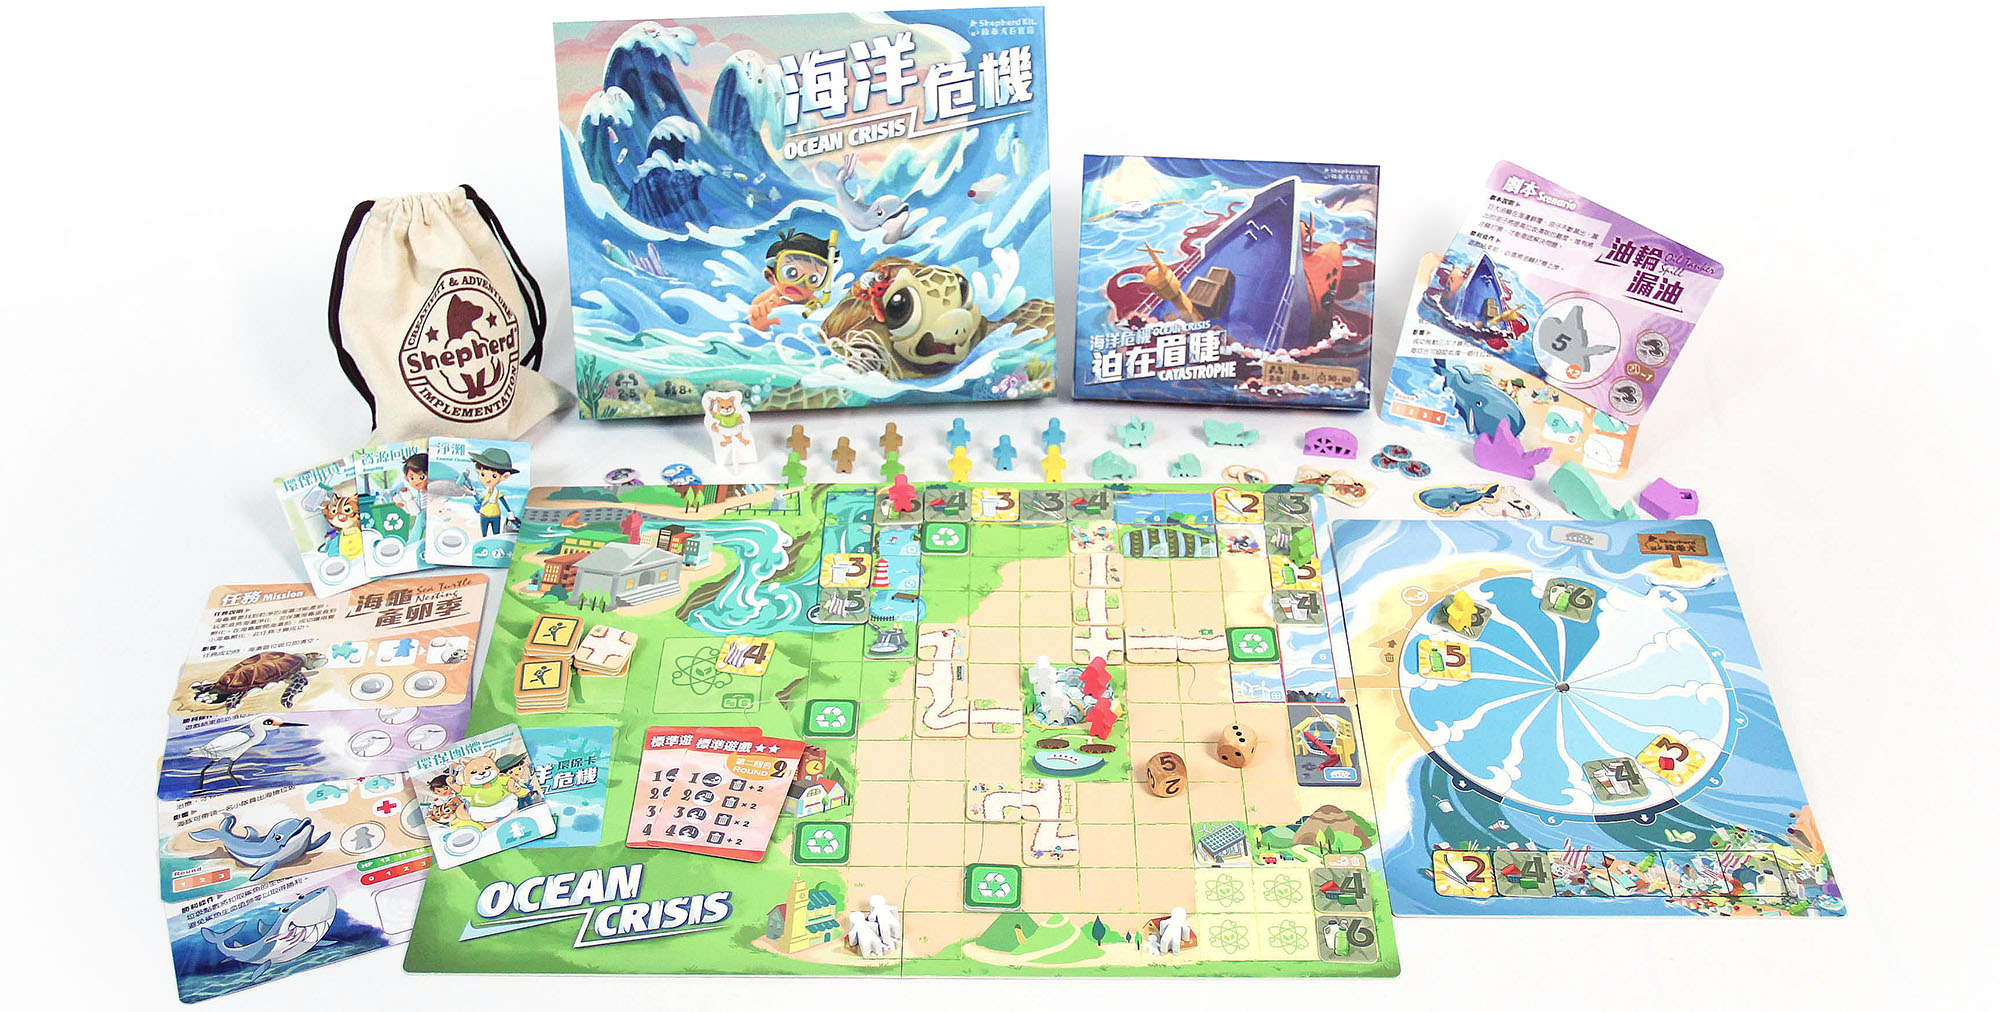 Ocean Crisis 海洋危機 | 香港桌遊天地 Welcome on Board Game Club Hong Kong